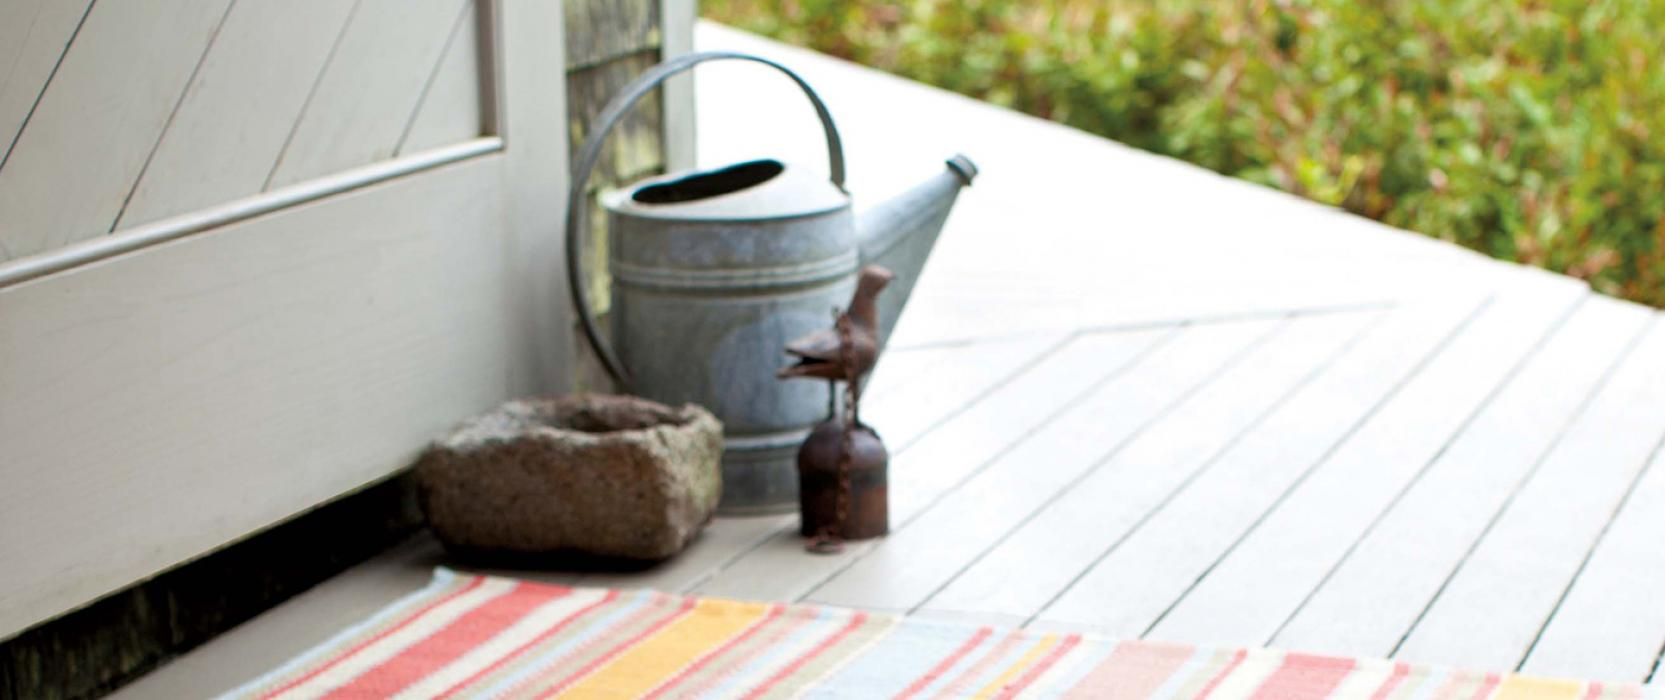 Decorating tip for your deck: indoor-outdoor rug